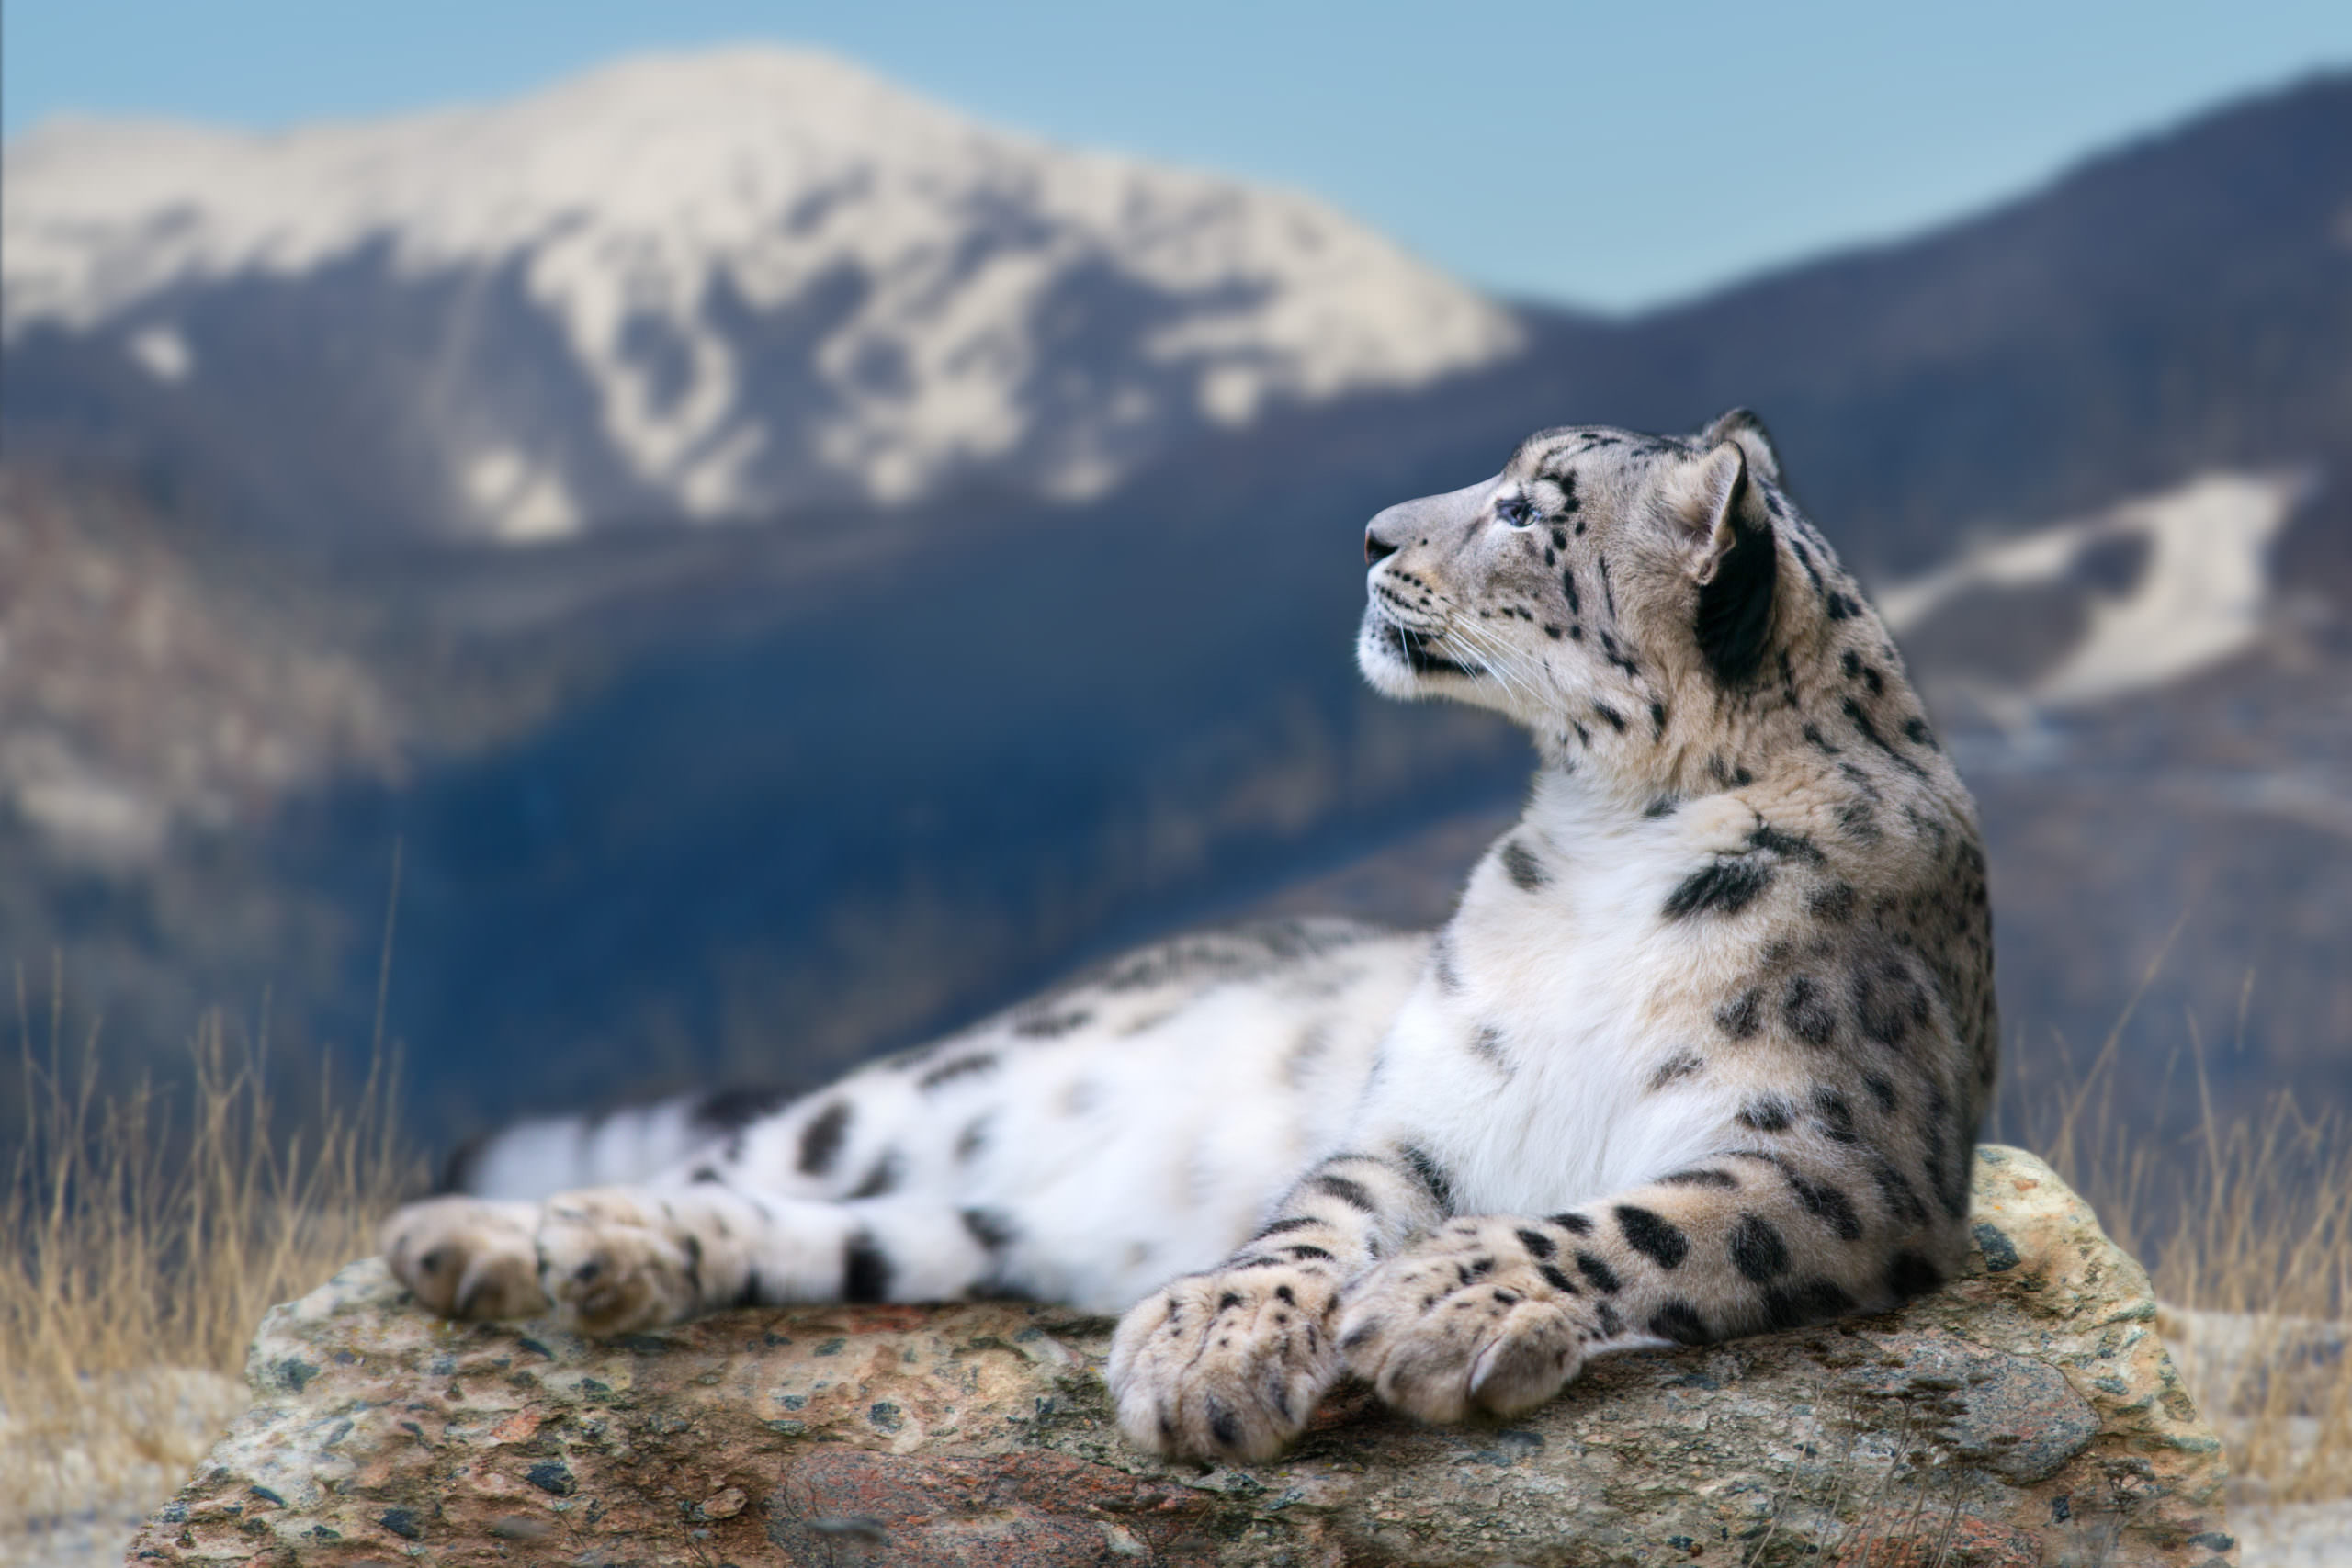 Tracking Snow Leopards in the Himalayas